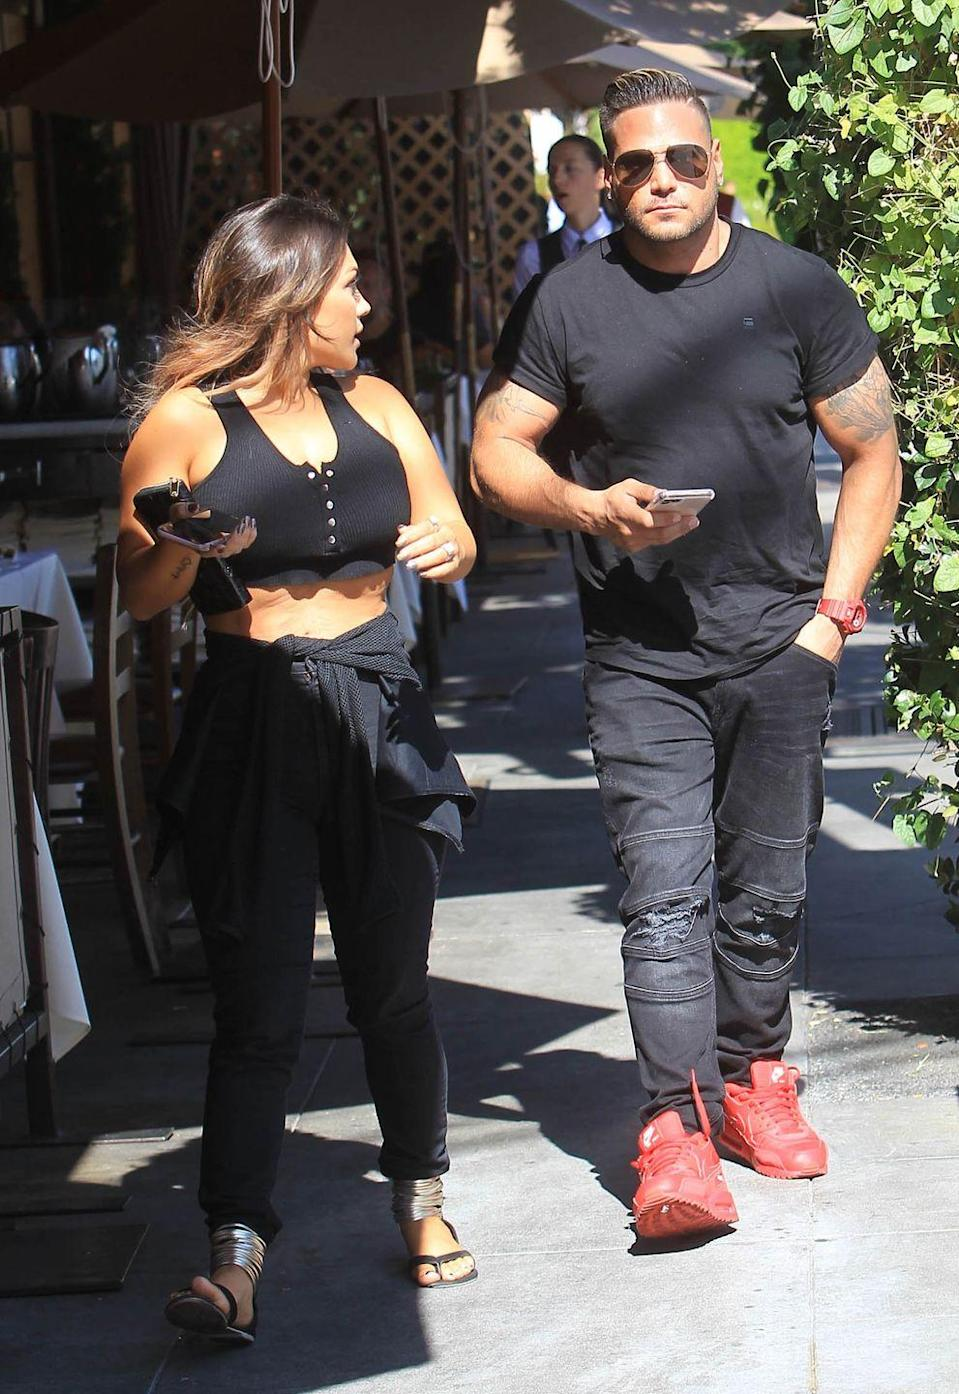 """<p>The <em>Jersey Shore</em> star and Harley welcomed daughter Ariana in April 2018. Later that year, Ortiz-Magro posted a photo and implied that Harley <a href=""""https://www.eonline.com/news/980230/jersey-shore-s-ronnie-ortiz-magro-claims-jen-hartley-gave-him-a-black-eye"""" rel=""""nofollow noopener"""" target=""""_blank"""" data-ylk=""""slk:gave him a black eye"""" class=""""link rapid-noclick-resp"""">gave him a black eye</a>. They are still famously up and down. </p>"""